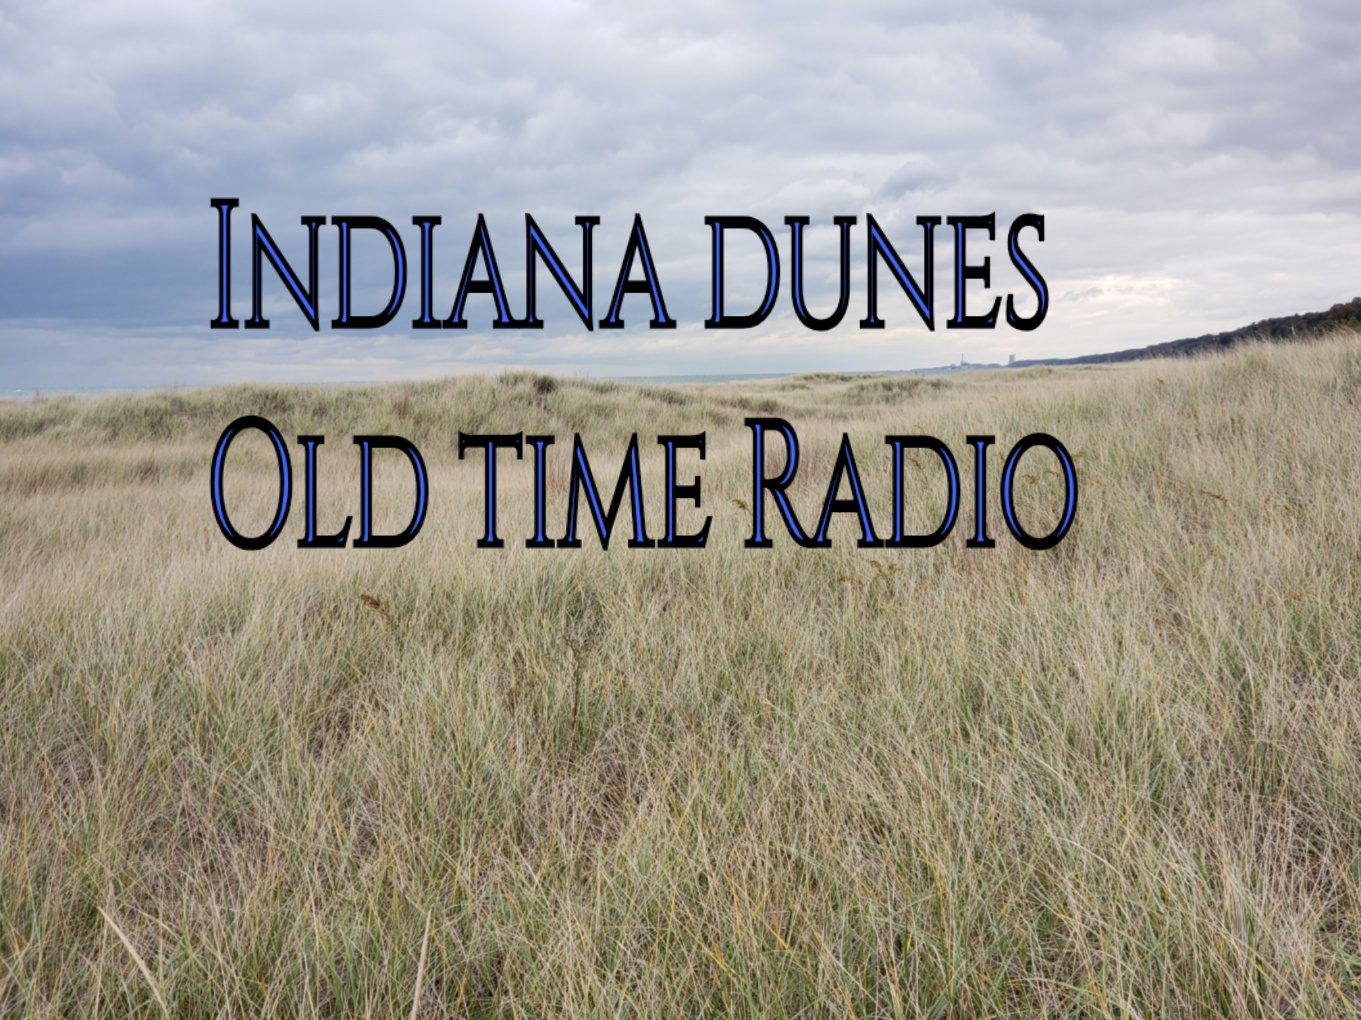 Art for We Will Be Right Back by Indiana Dunes Old Time Radio